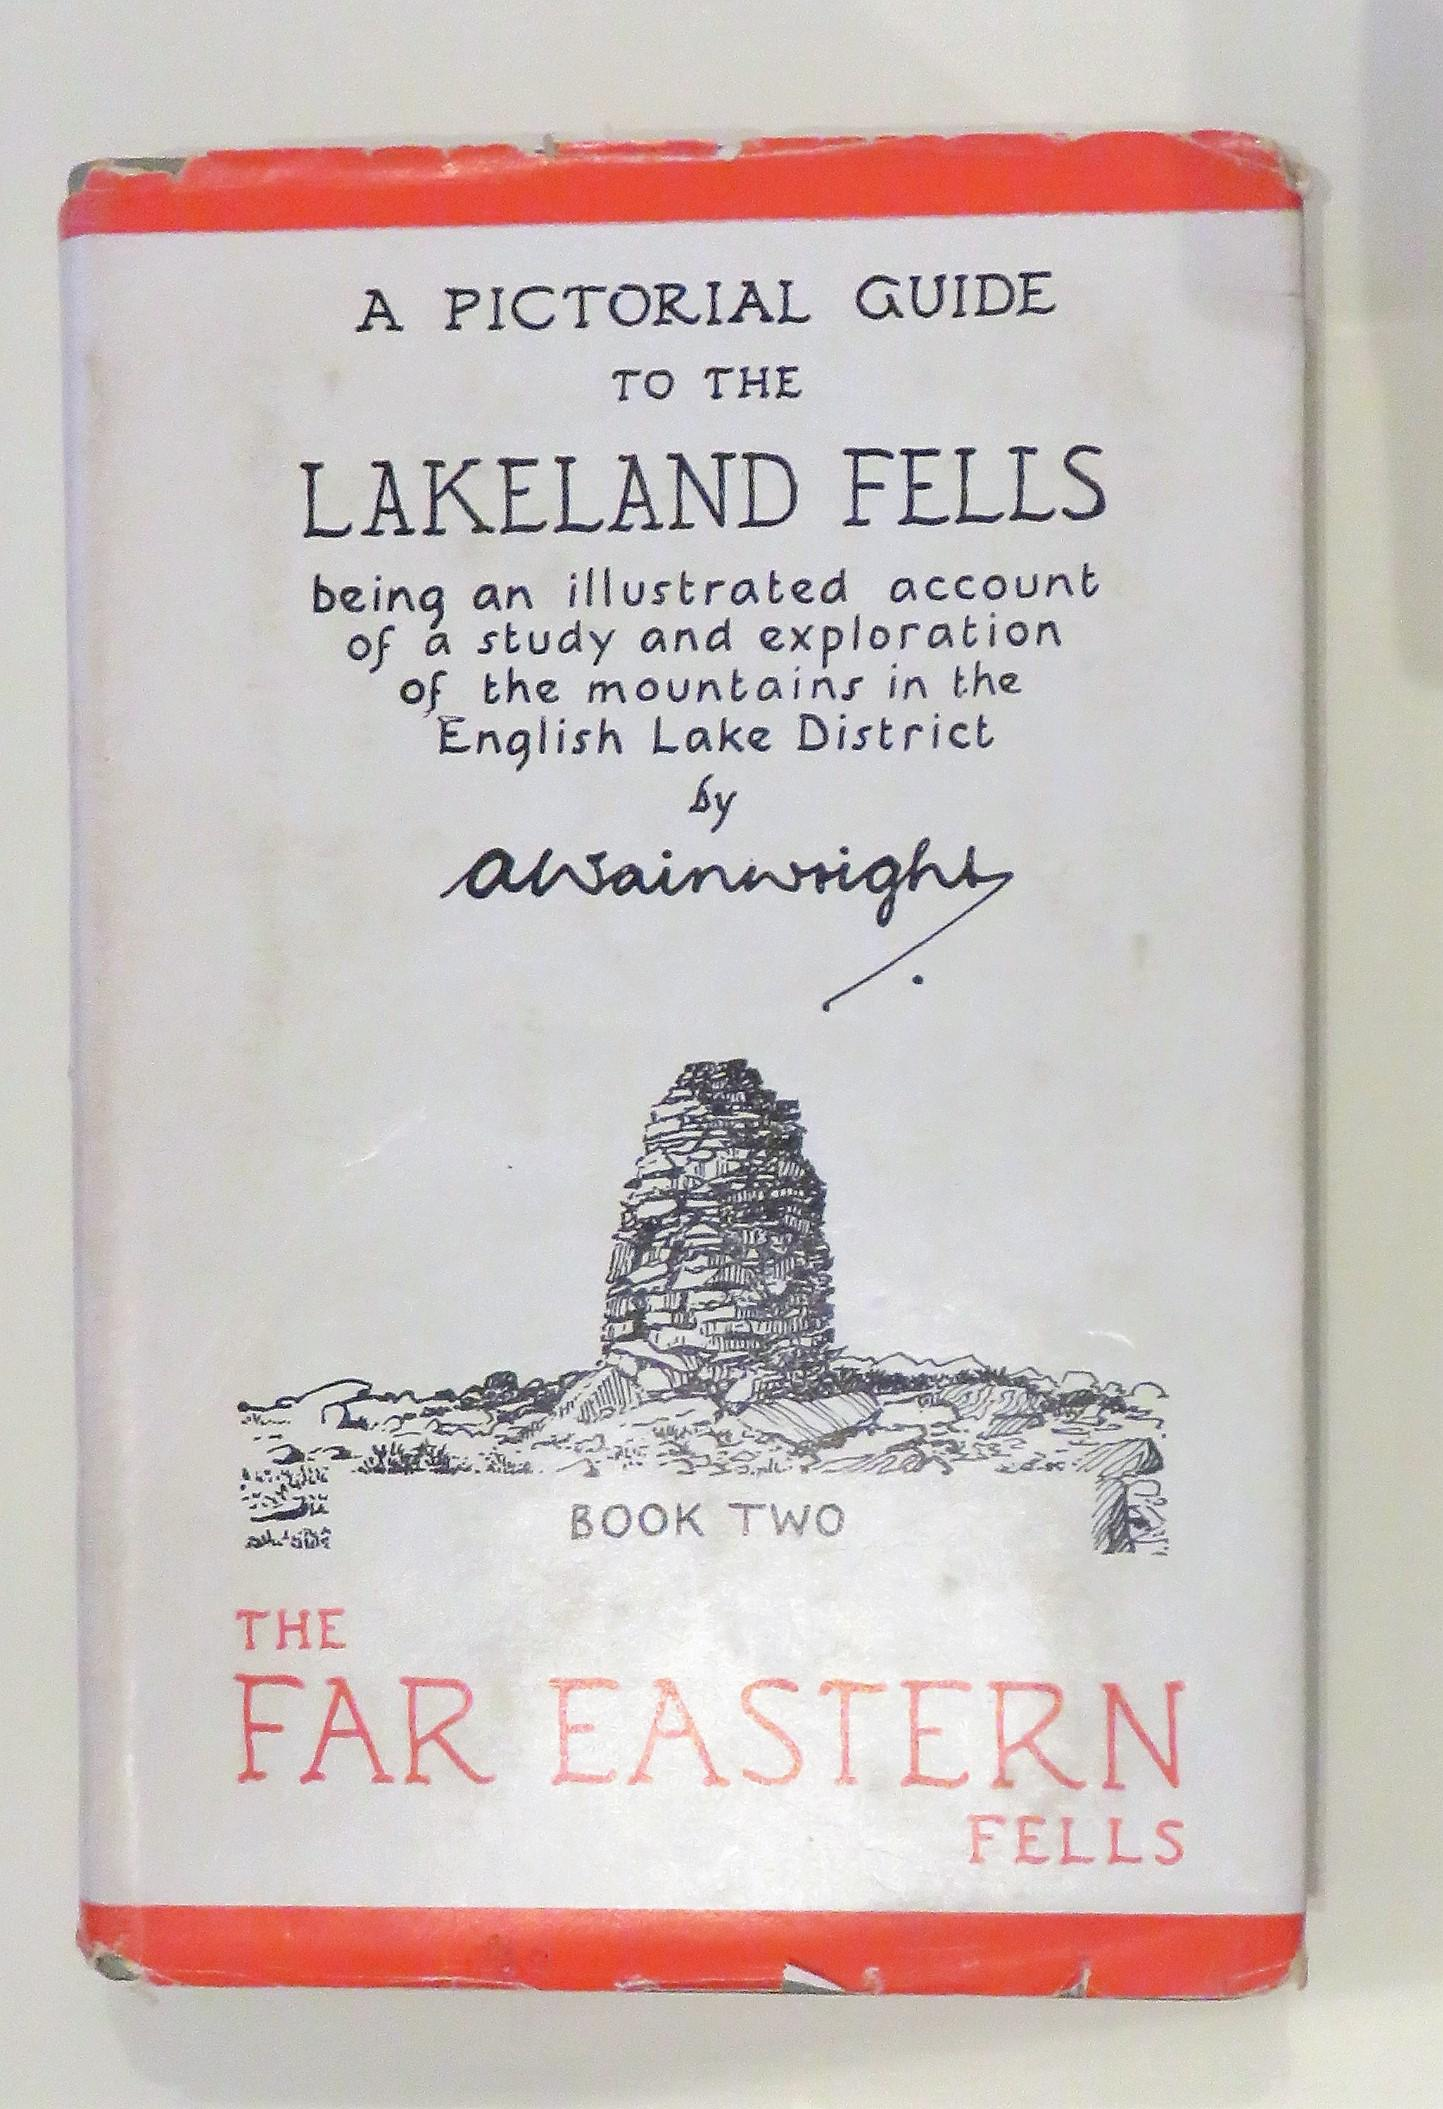 A Pictorial Guide to the Lakeland Fells Being An Illustrated Account of a Study and Exploration of the Mountains in the English Lake District